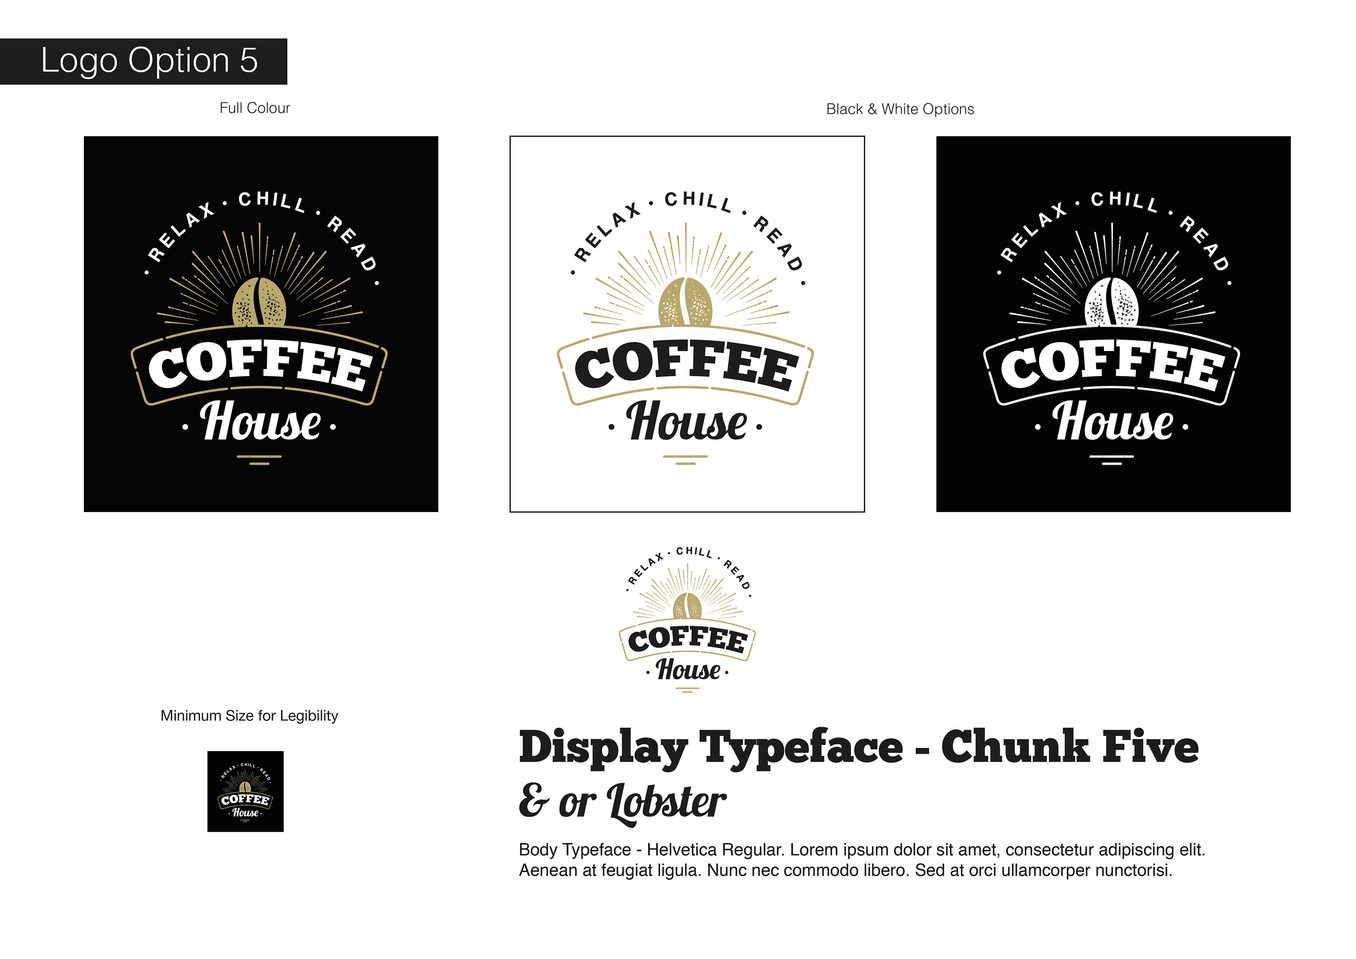 Coffee House Visual Identity - Development 5